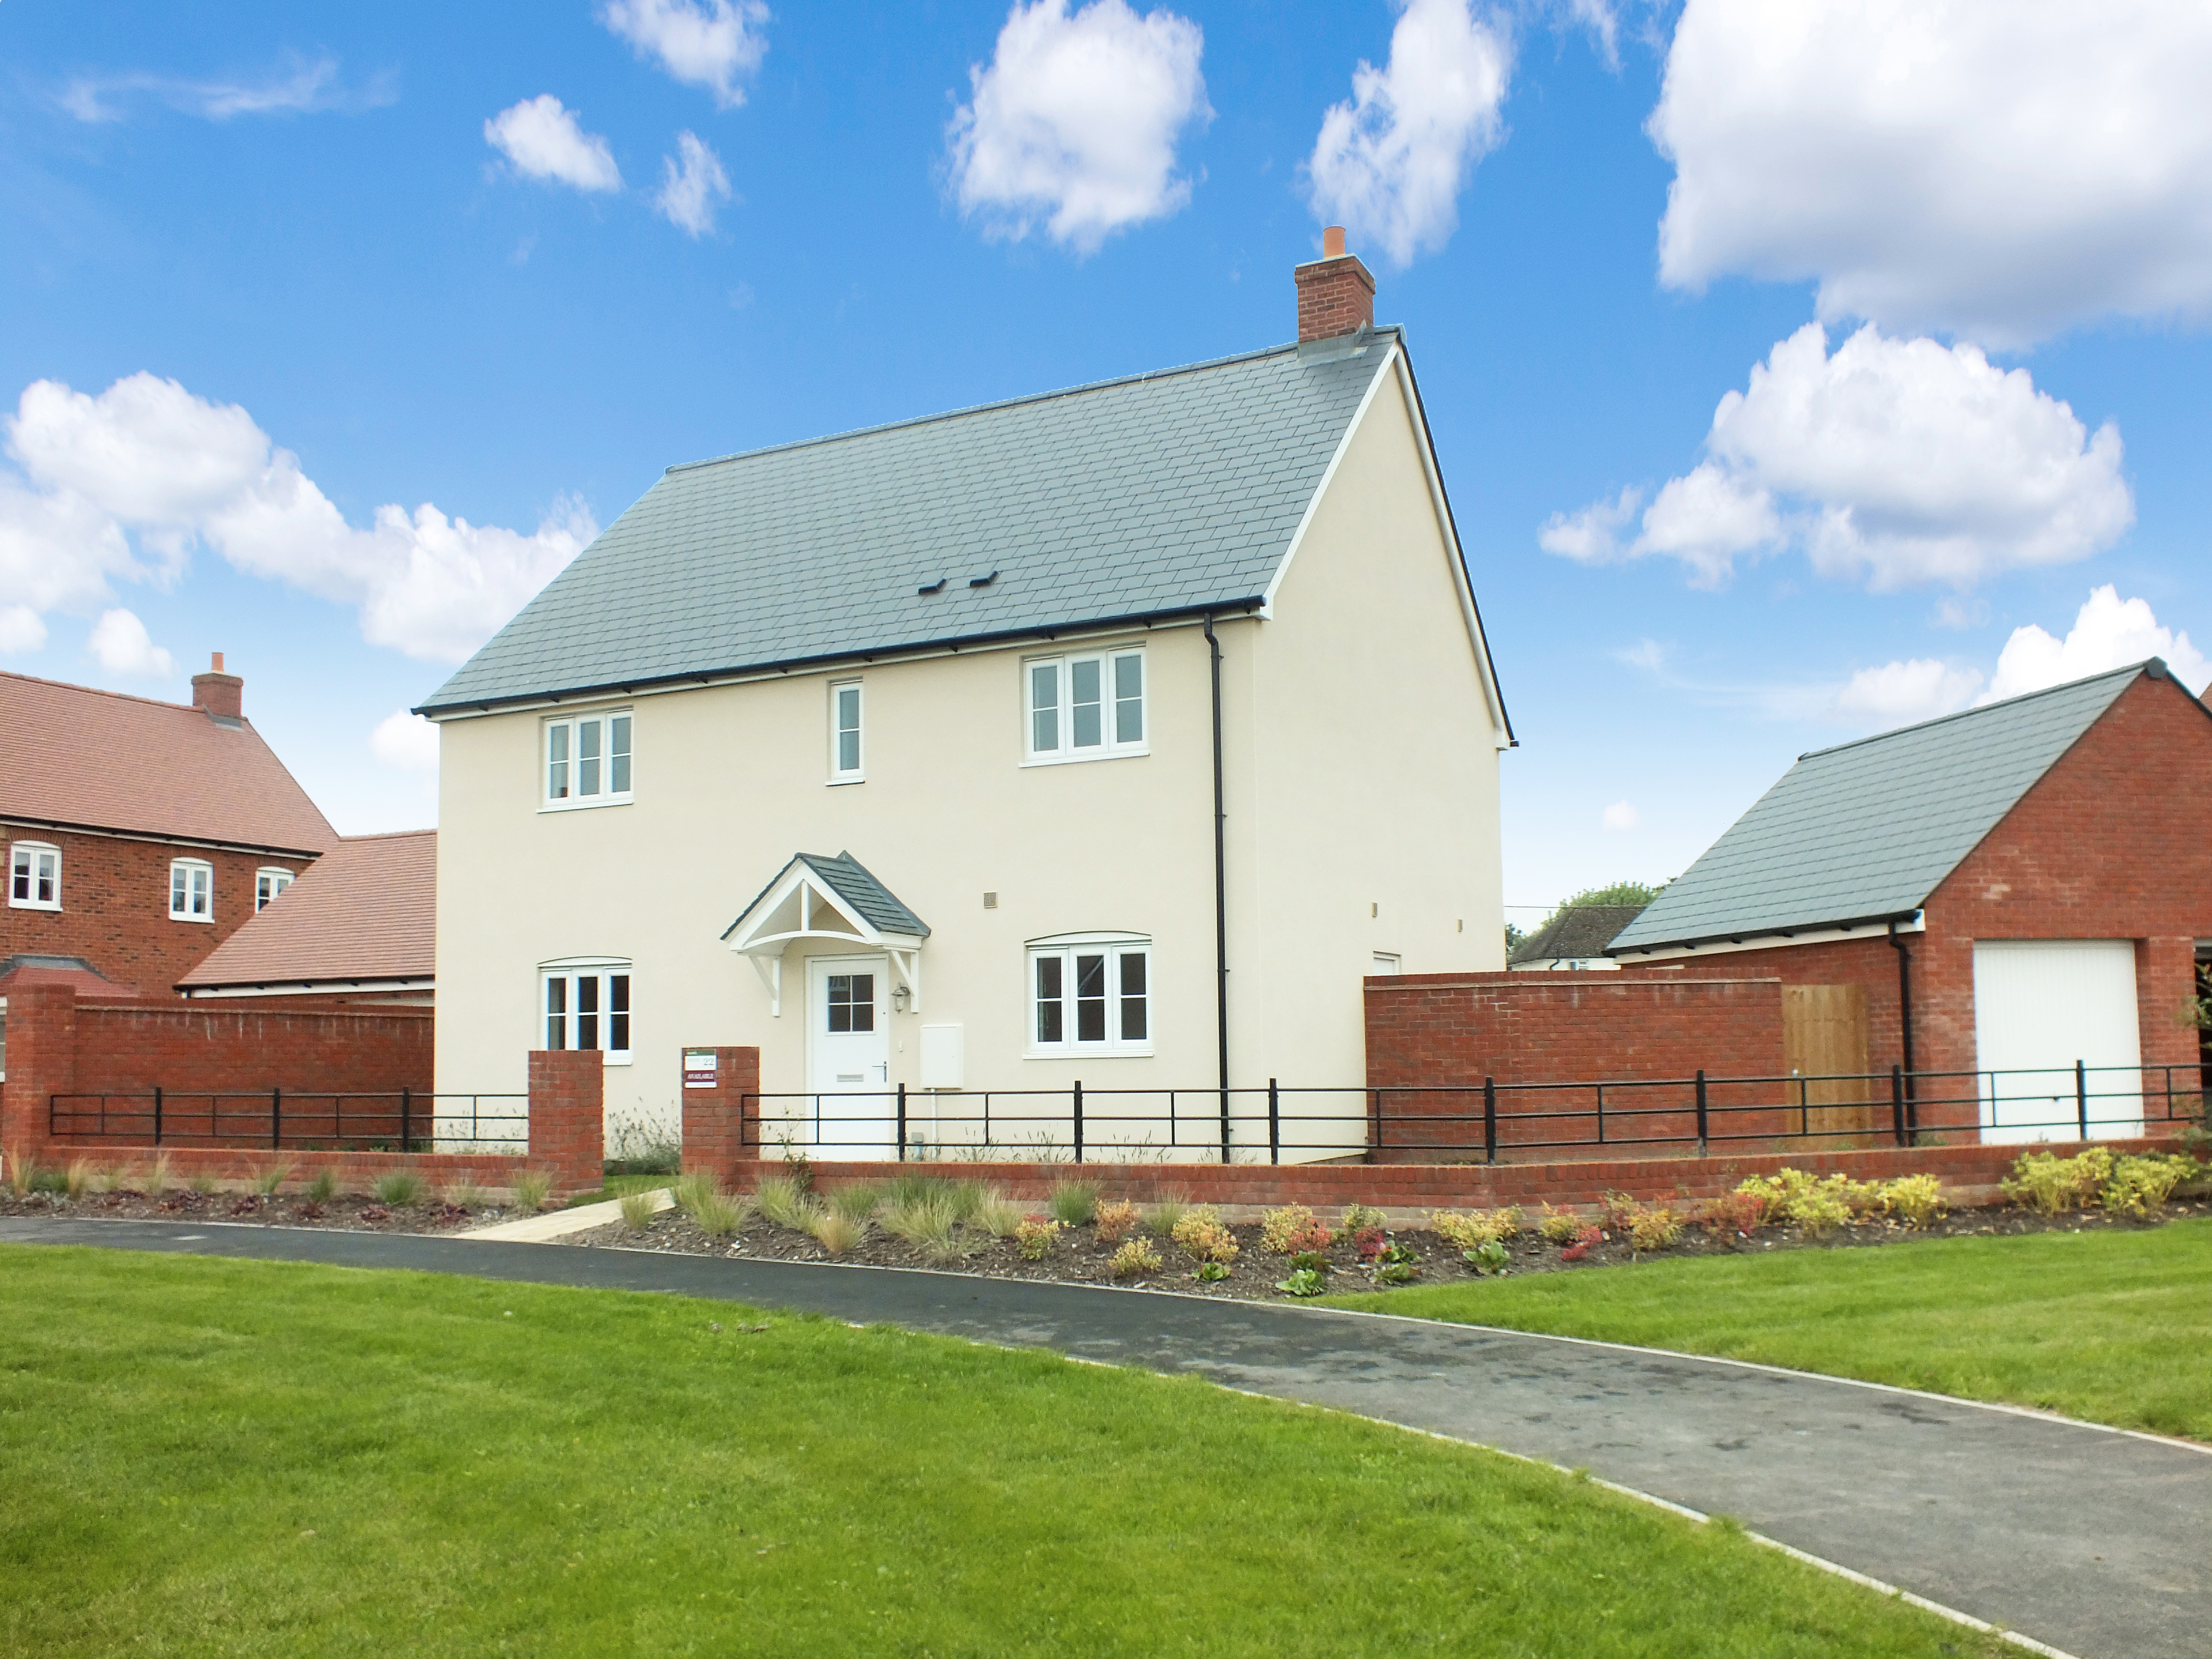 Last chance to buy at Uffington - Just three homes remaining!